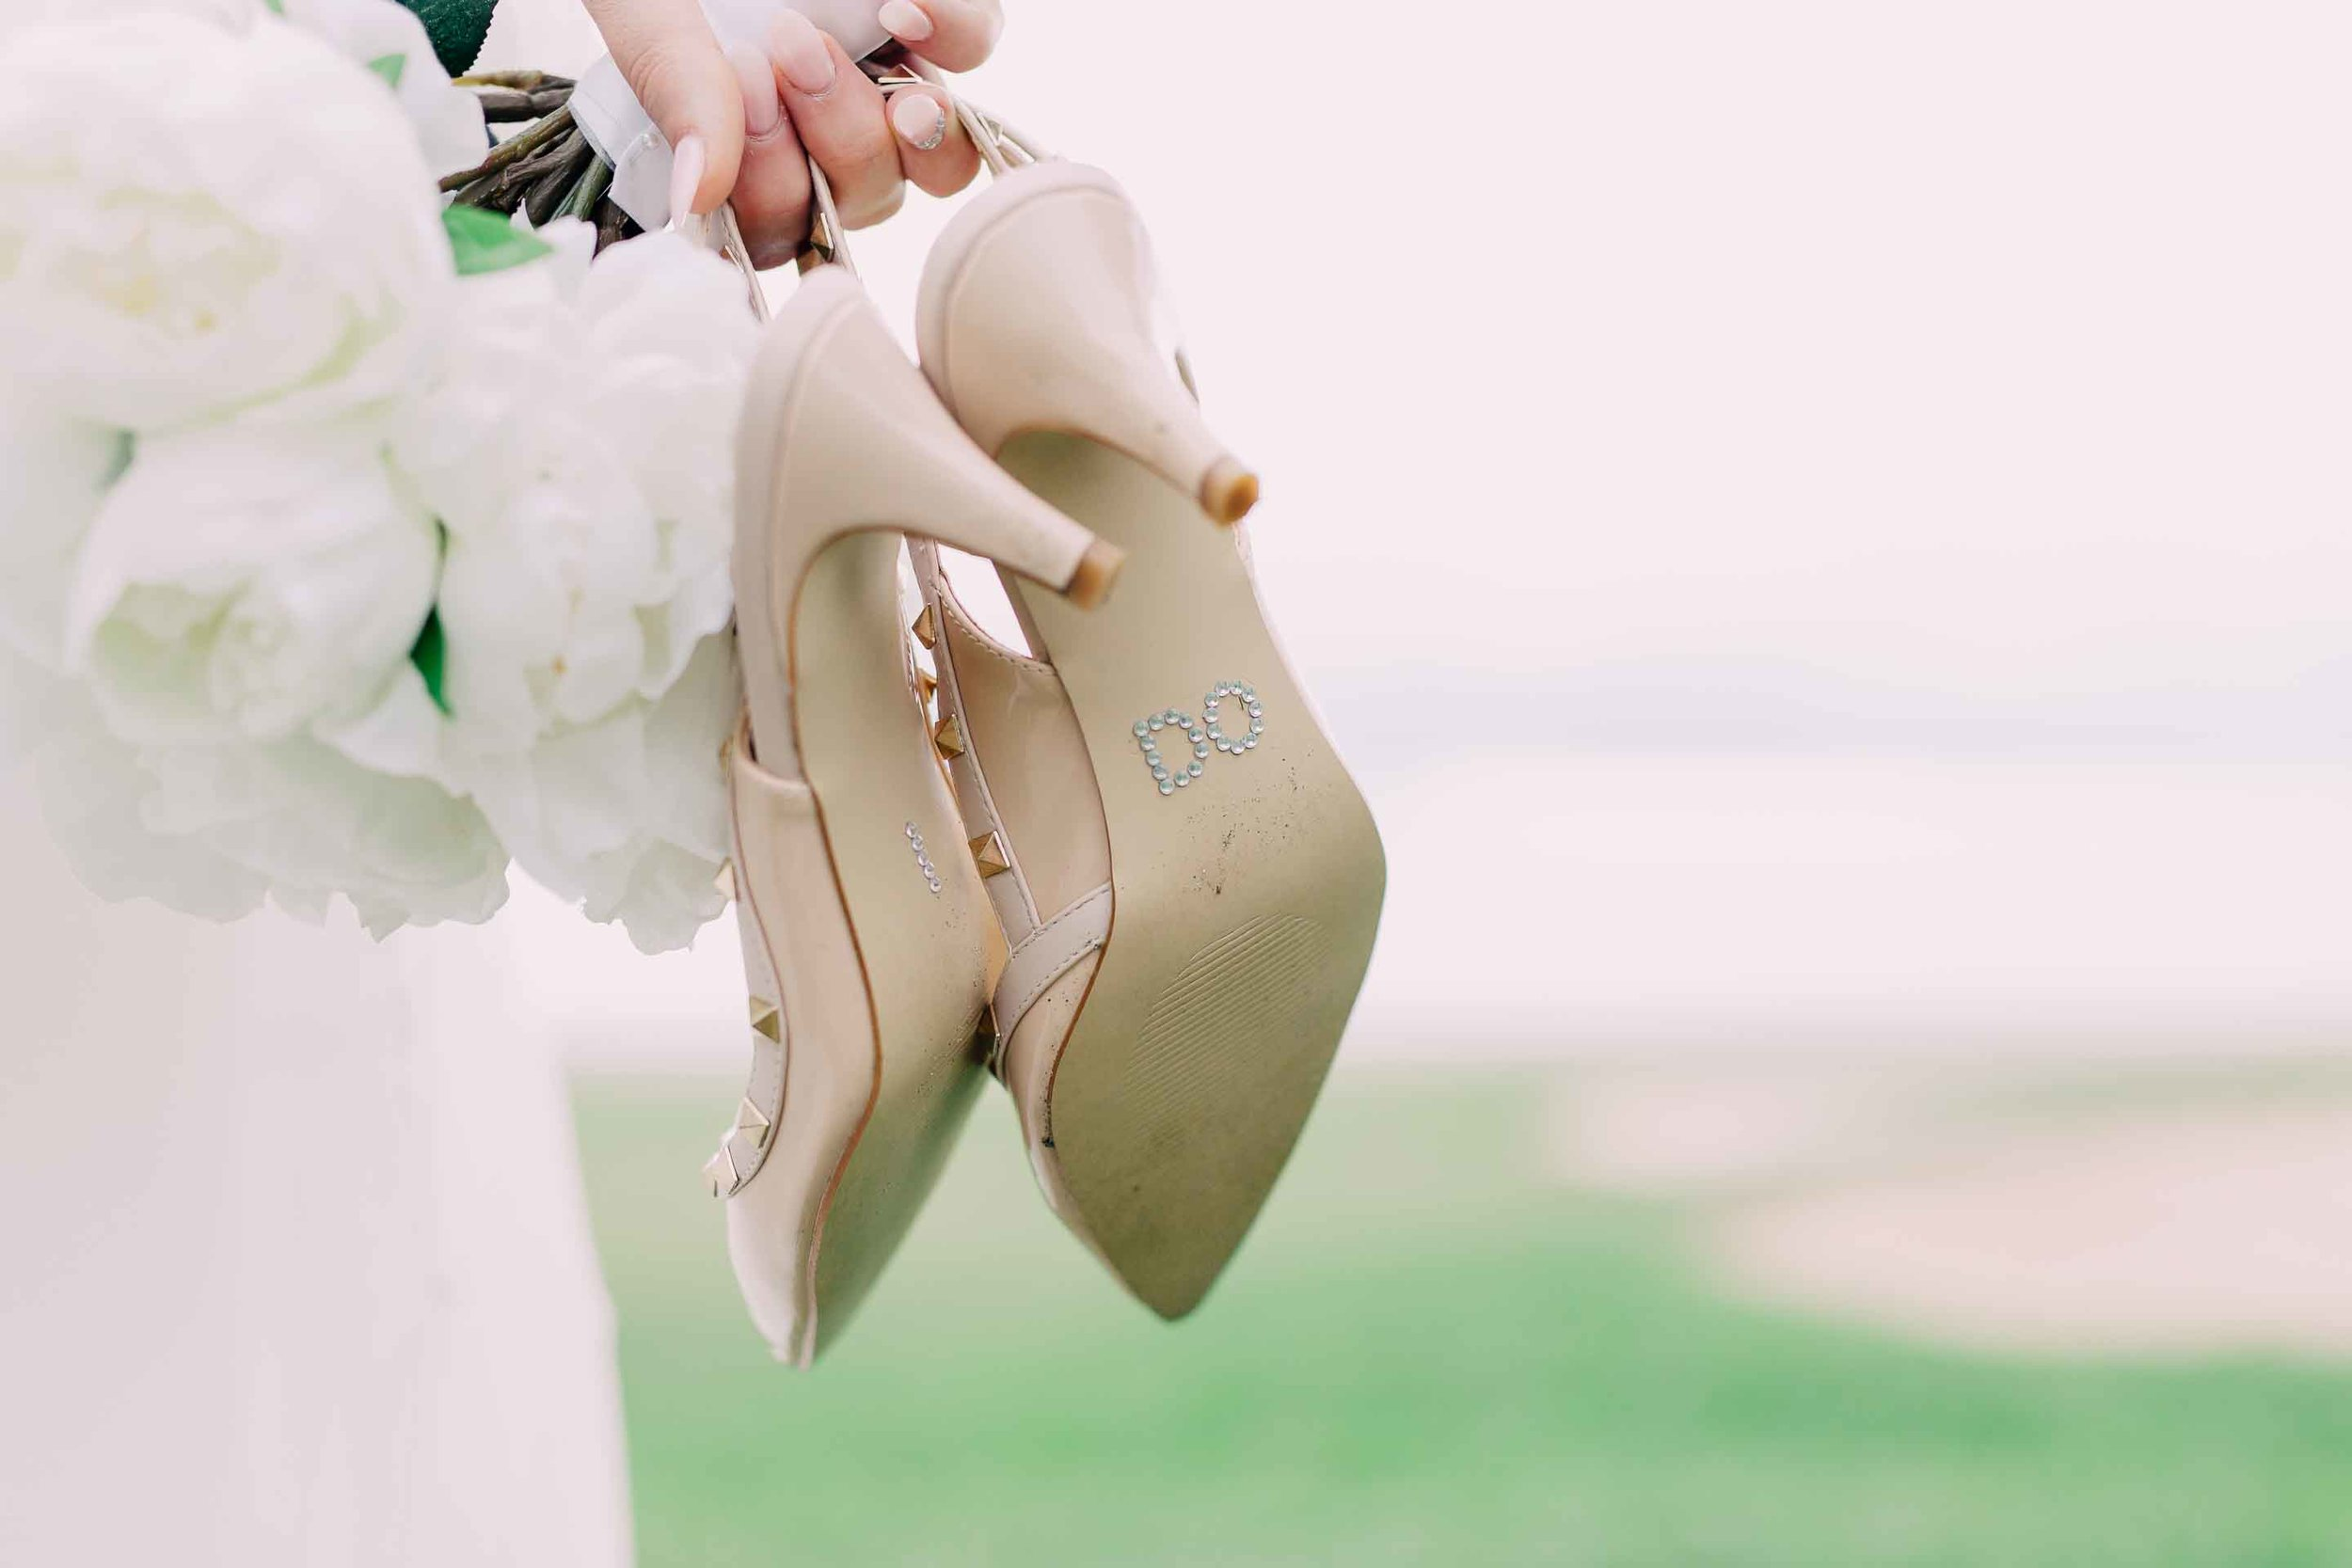 Artificial white peony wedding bouquet and bride's shoes with I Do on the soles in rhinestones. Wedding shoes are Nude Valentino studded heels.